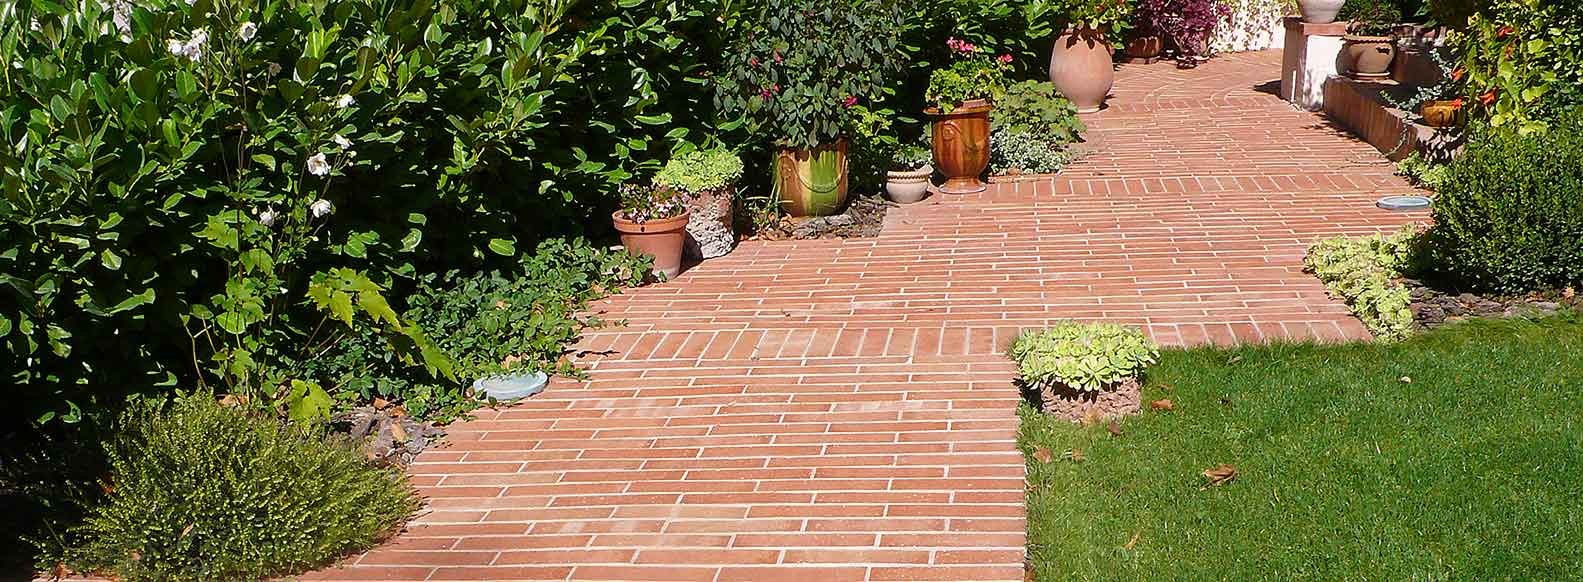 Creating a brick garden path